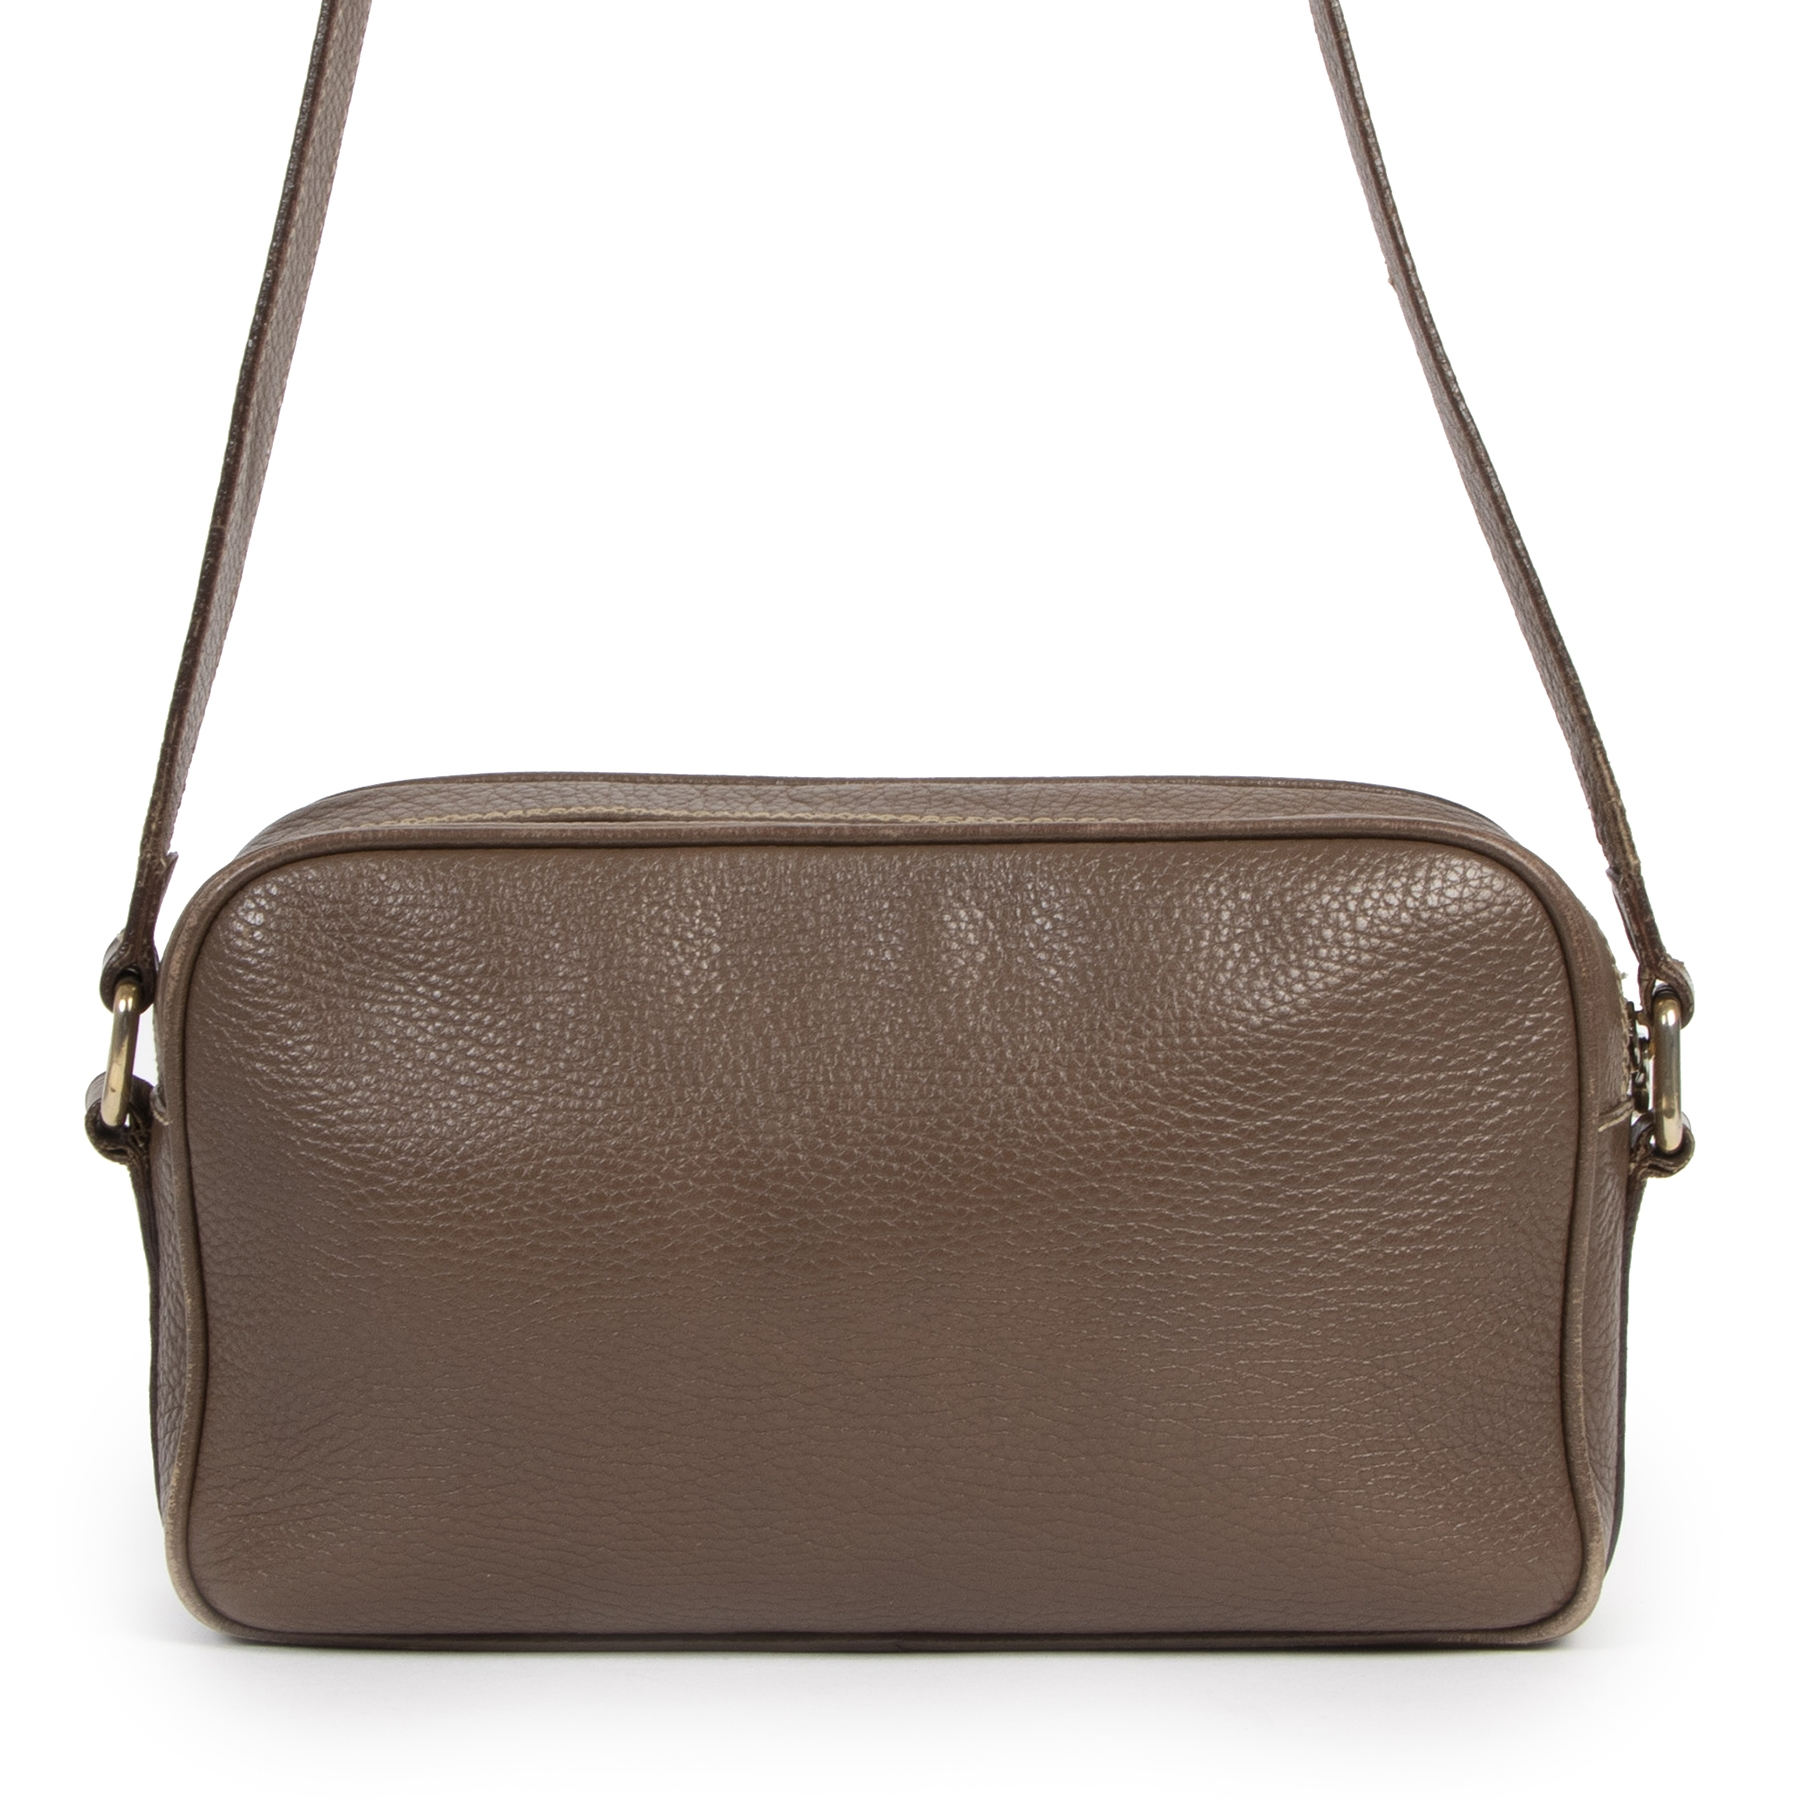 Buy authentic secondhand Fendi bags at the right price at LabelLOV vintage webshop. Safe and secure online shopping.